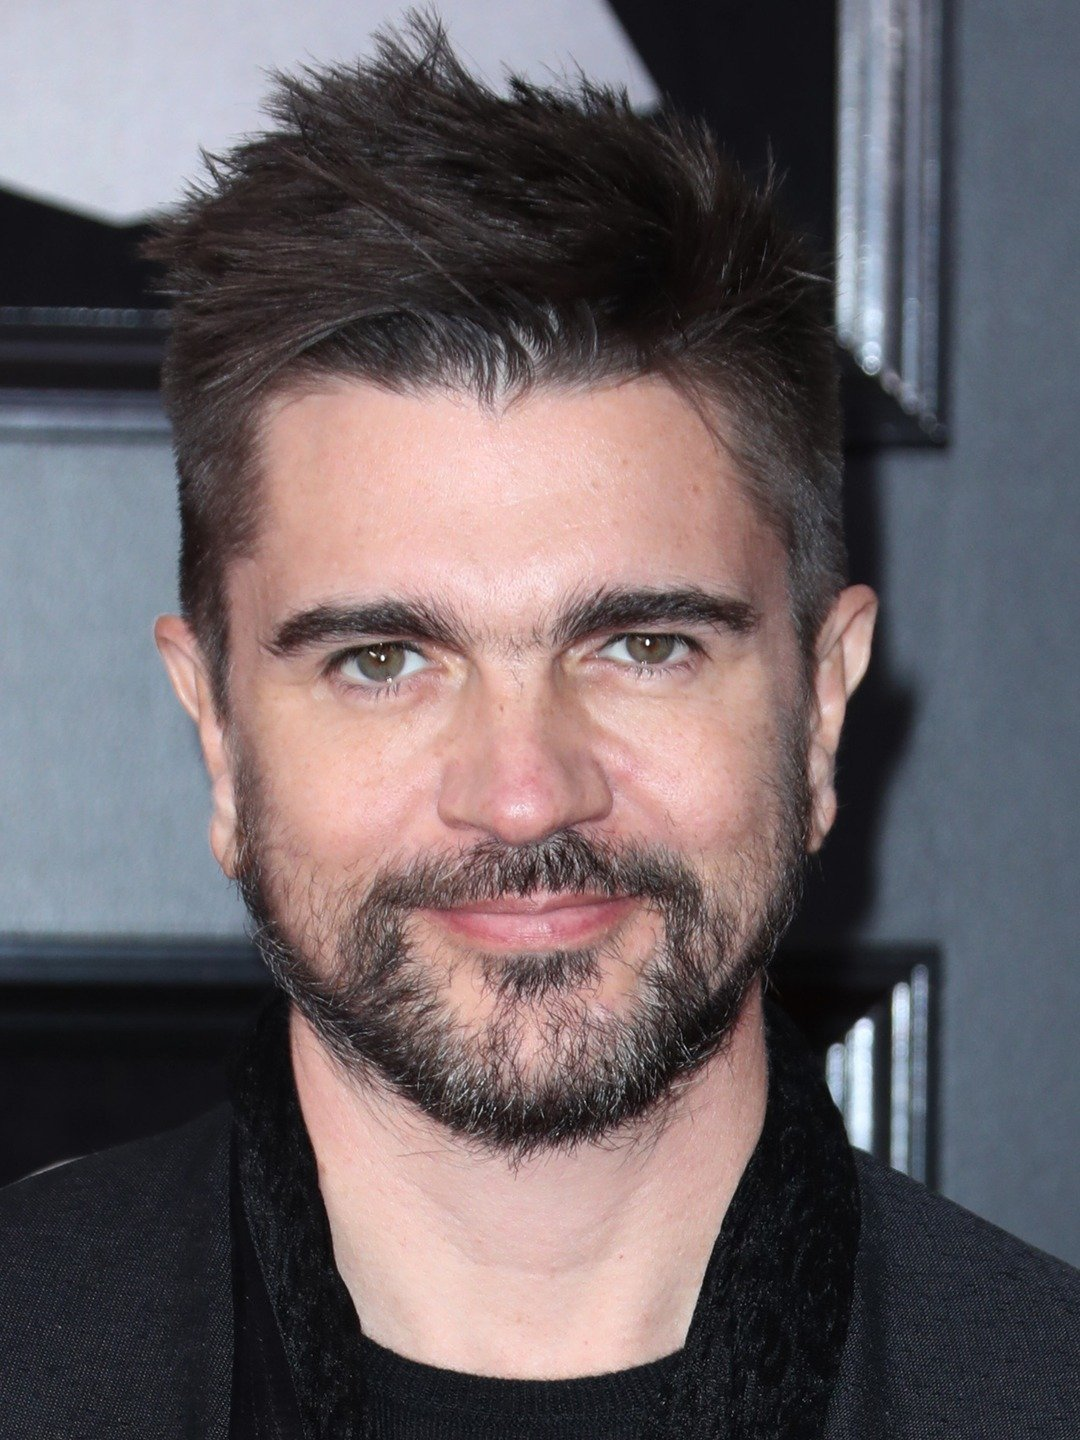 Juanes Honored with Person of the Year